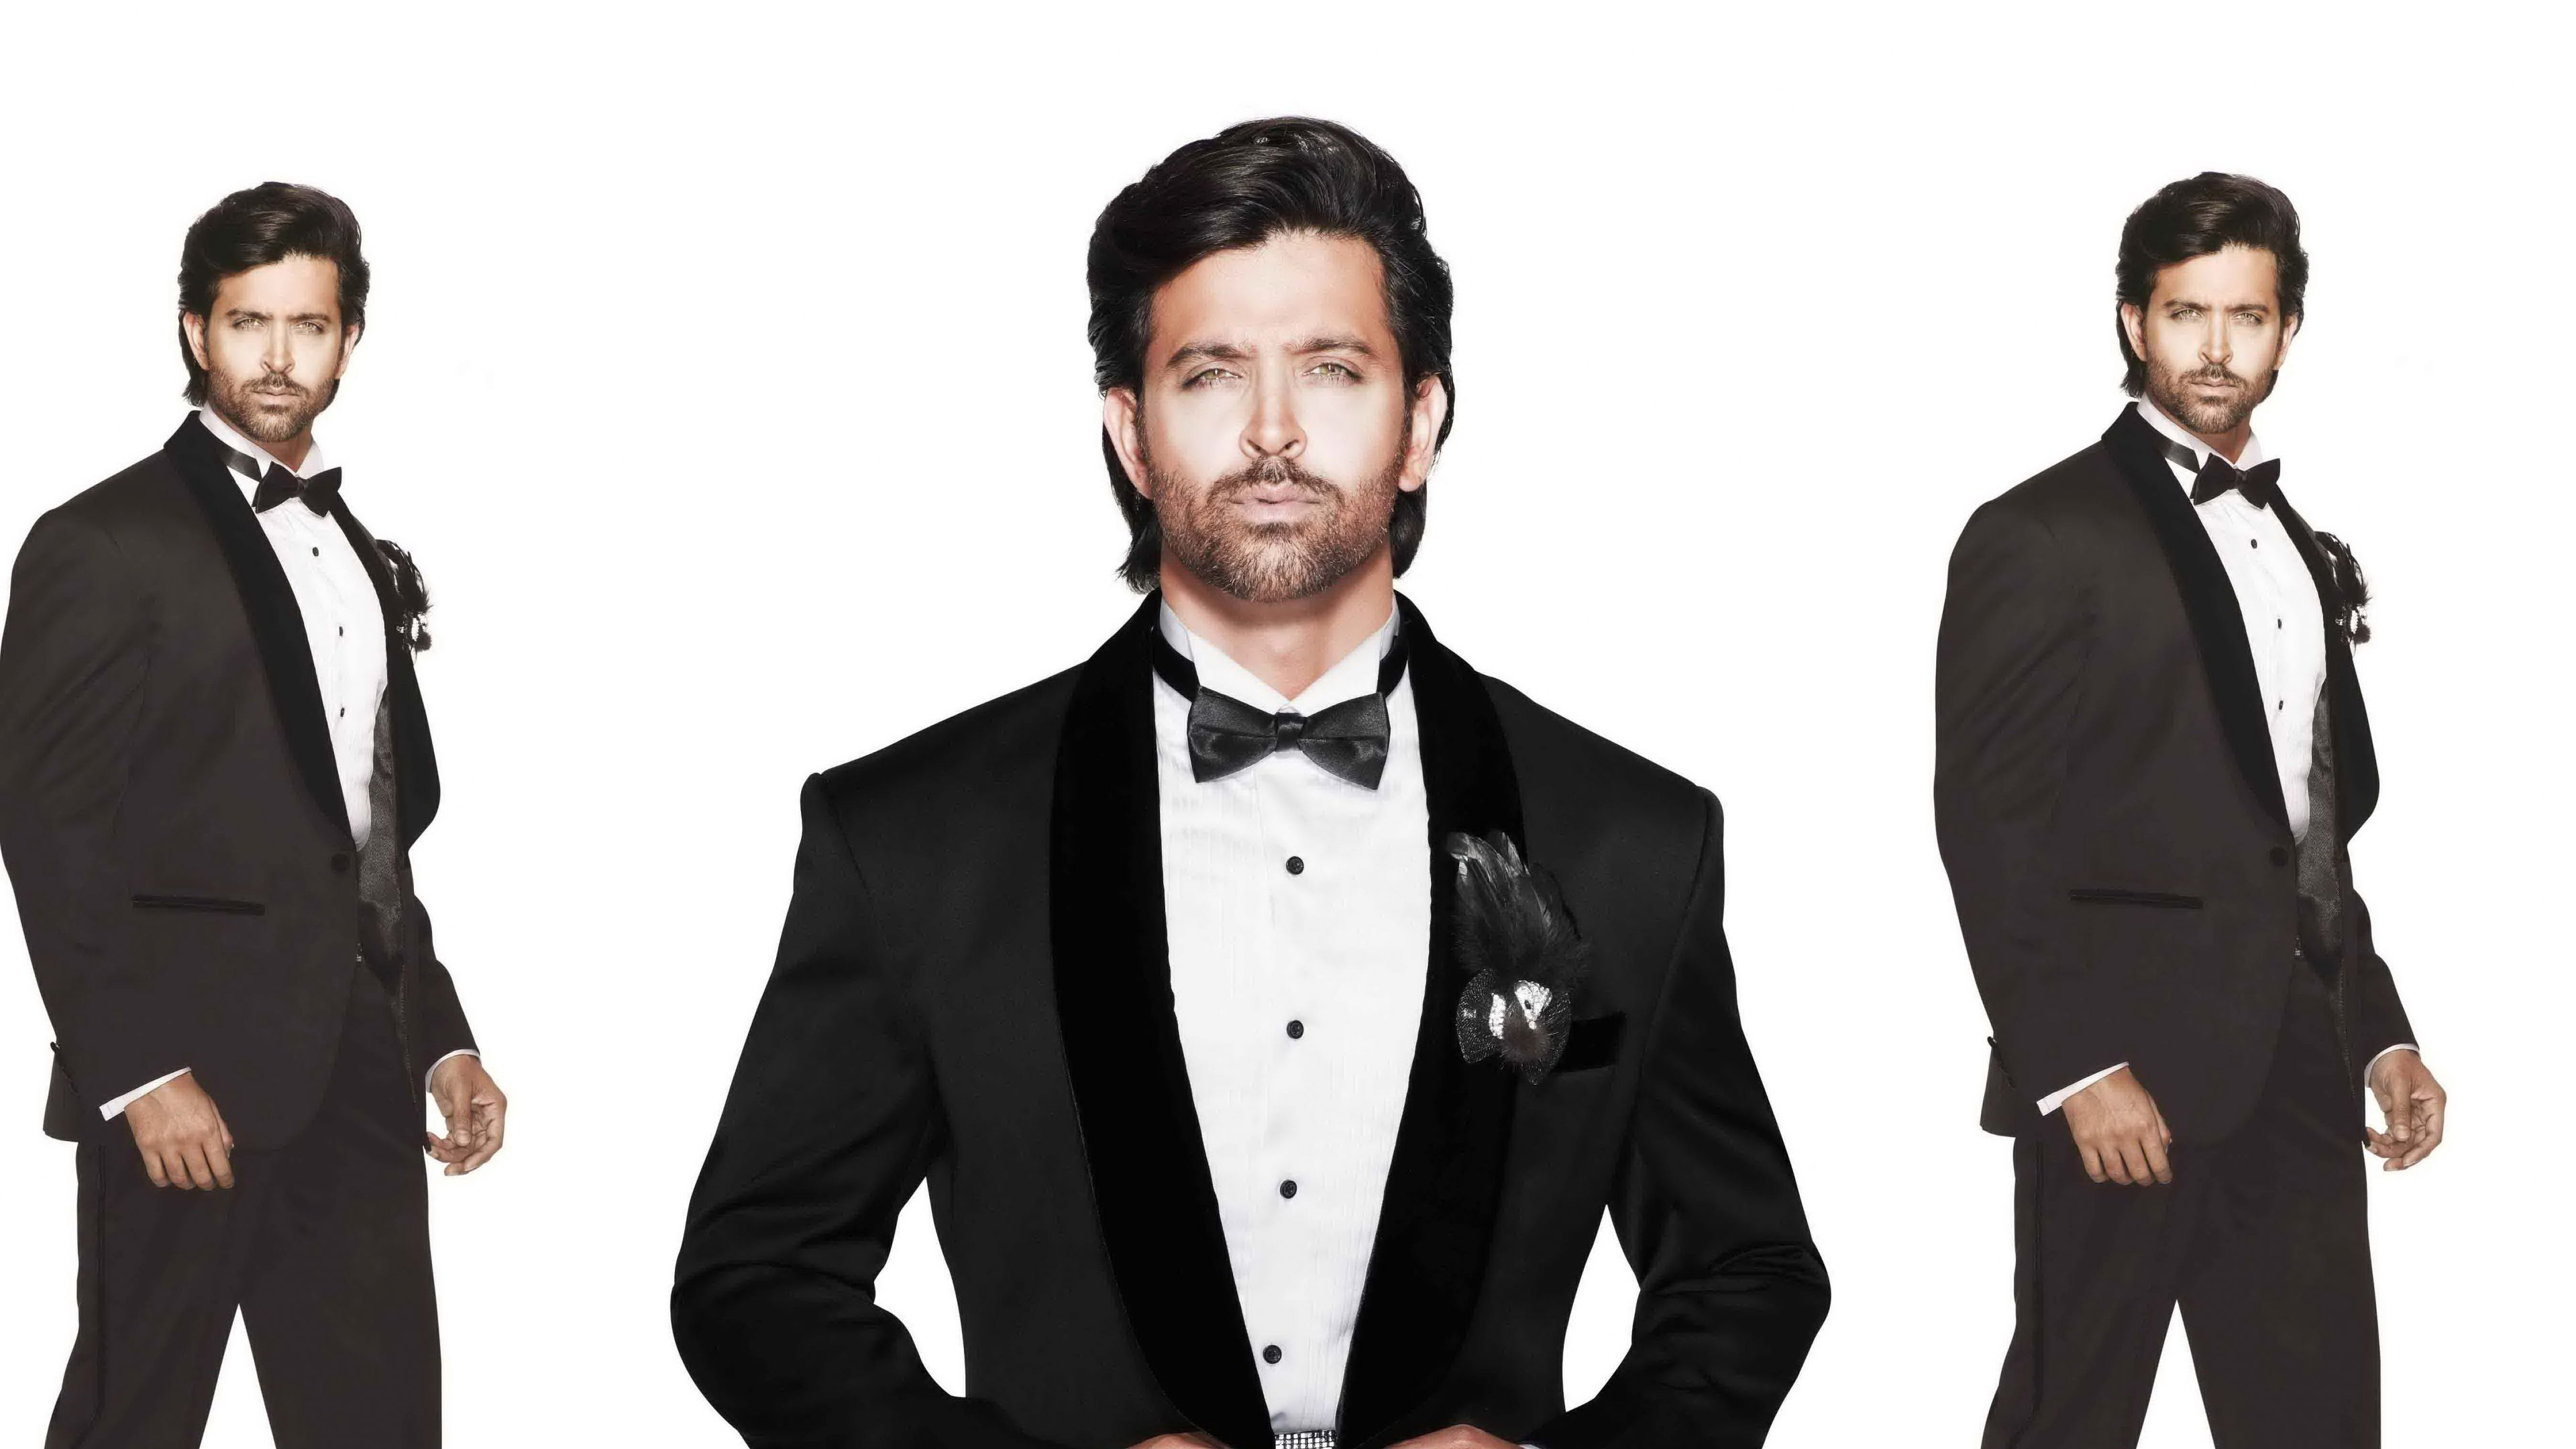 Download Tuxedo Humor Black White x Wallpapers Desktop